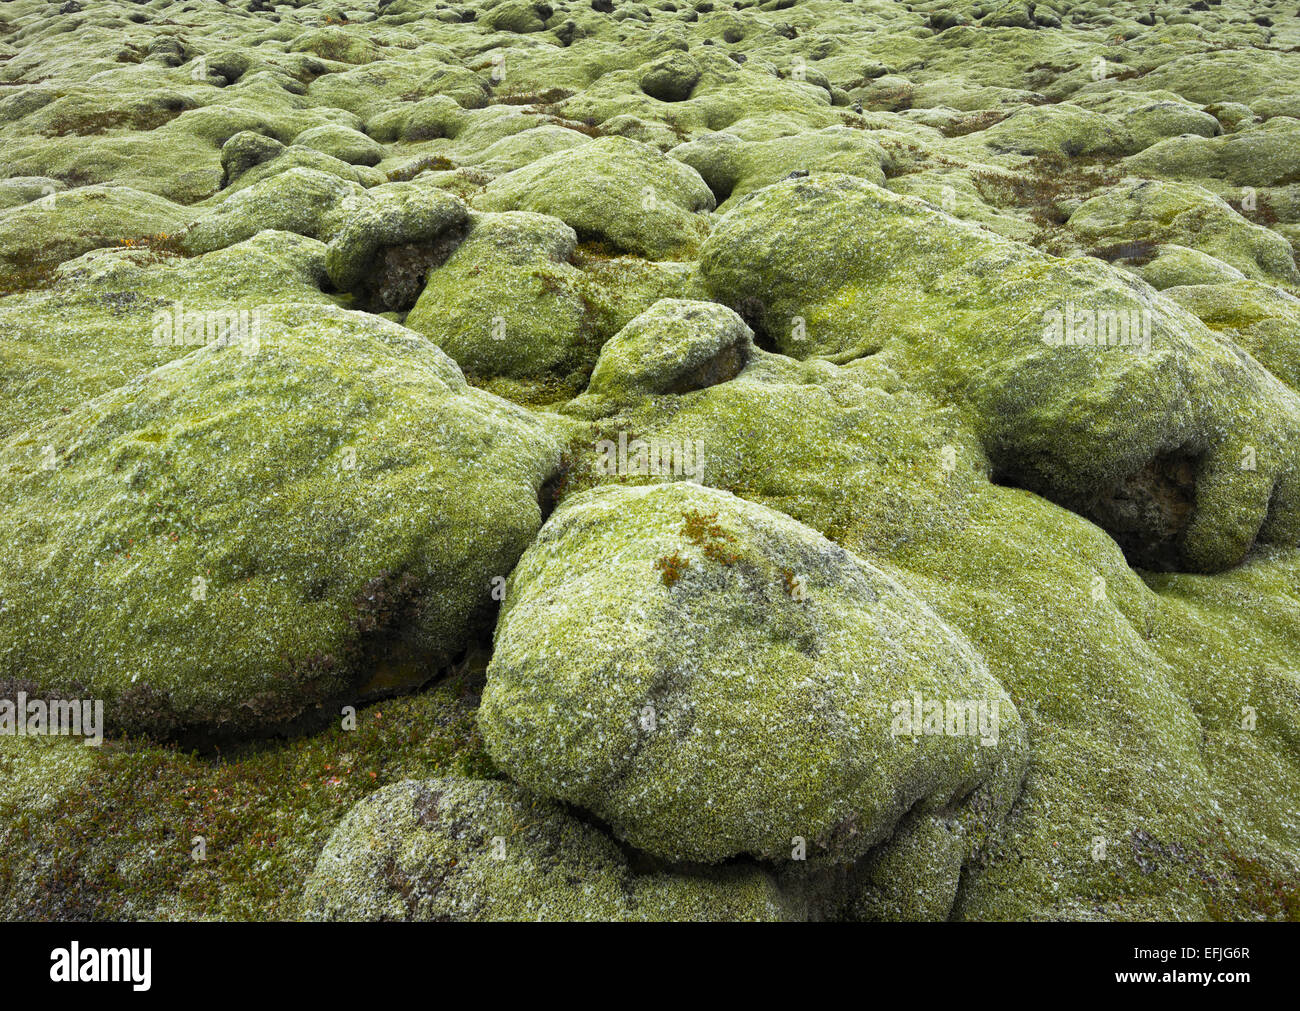 Moss covered stones, Eldhraun lava field, South Iceland, Iceland - Stock Image